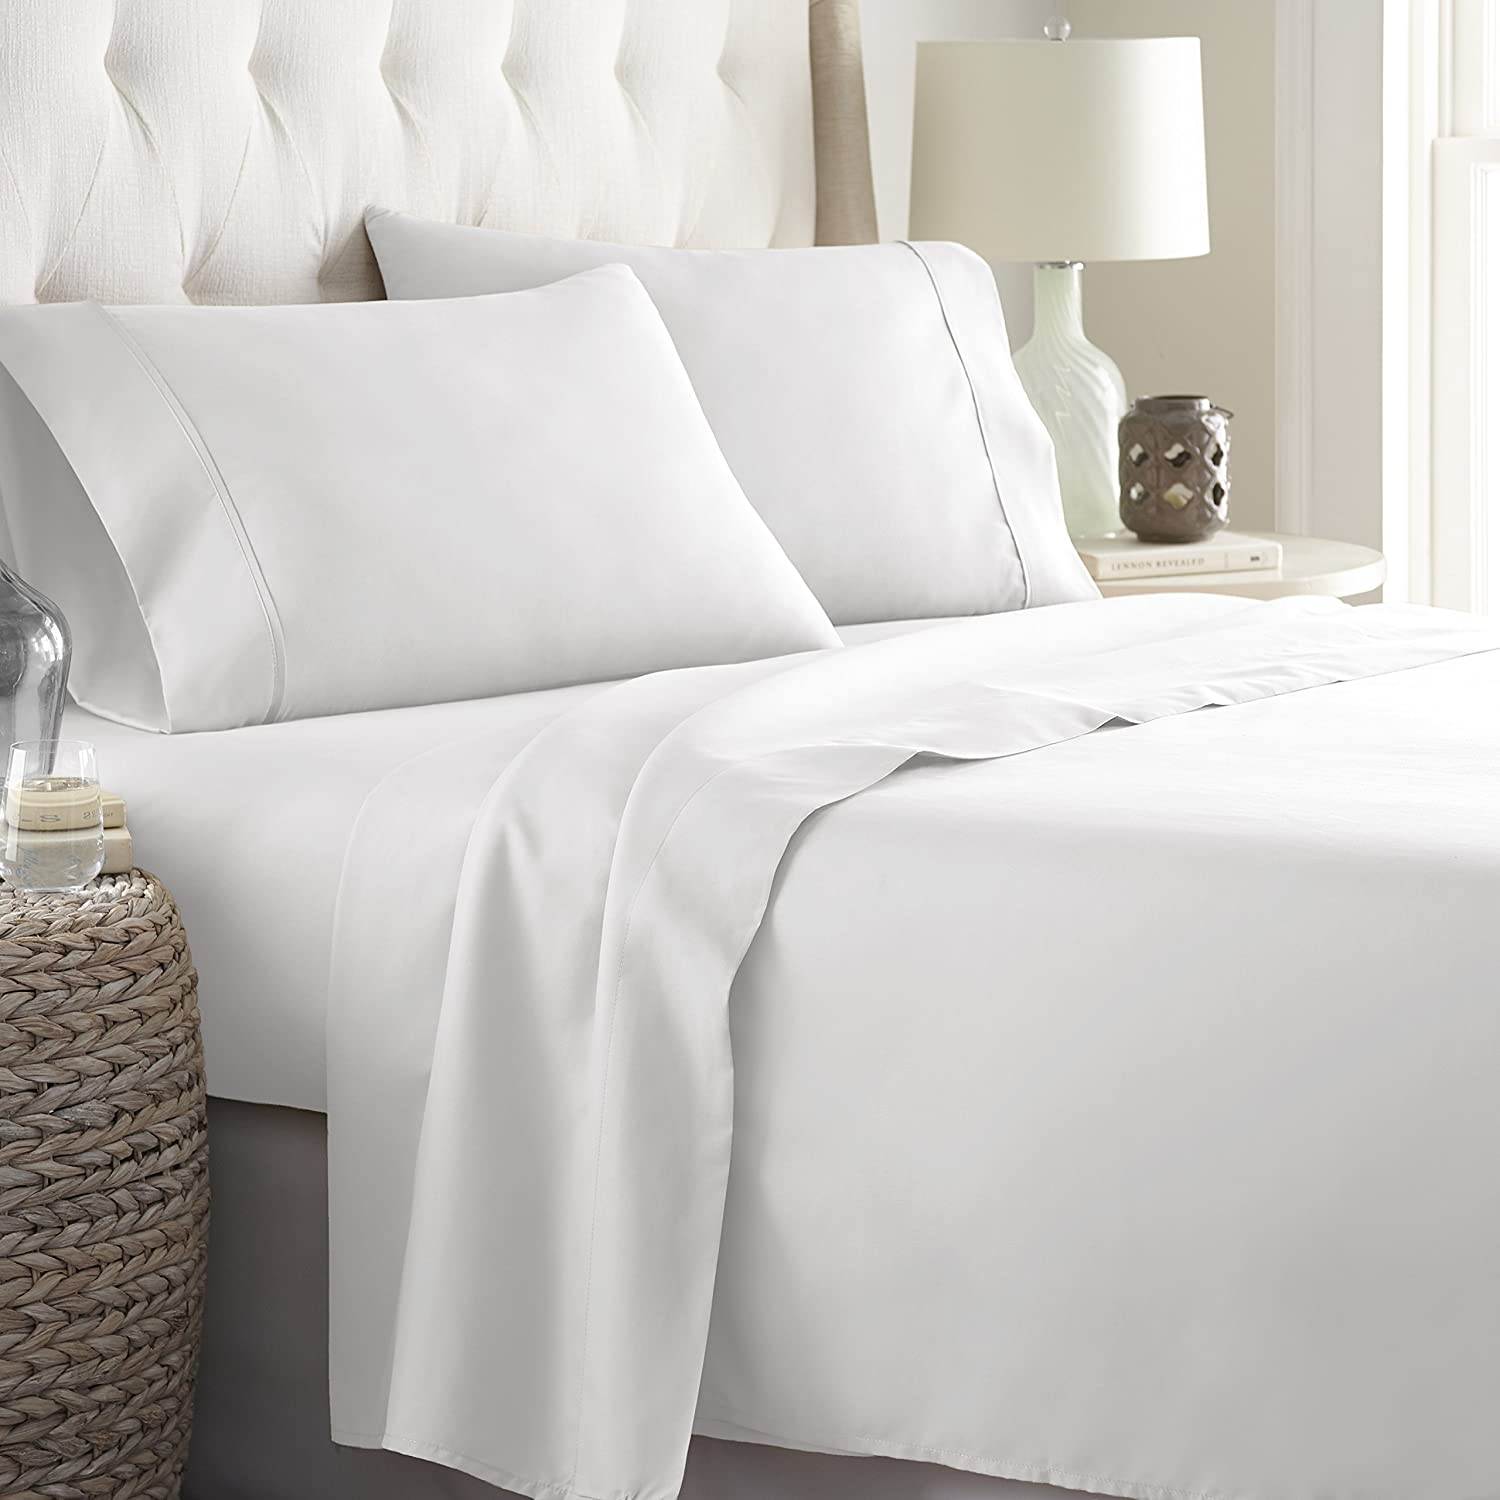 62e99bc2a6 HC Collection Bed Sheets Set, HOTEL LUXURY 1800 Series Platinum Collection Bedding  Set, Deep Pockets, Wrinkle & Fade Resistant, Hypoallergenic Sheet ...